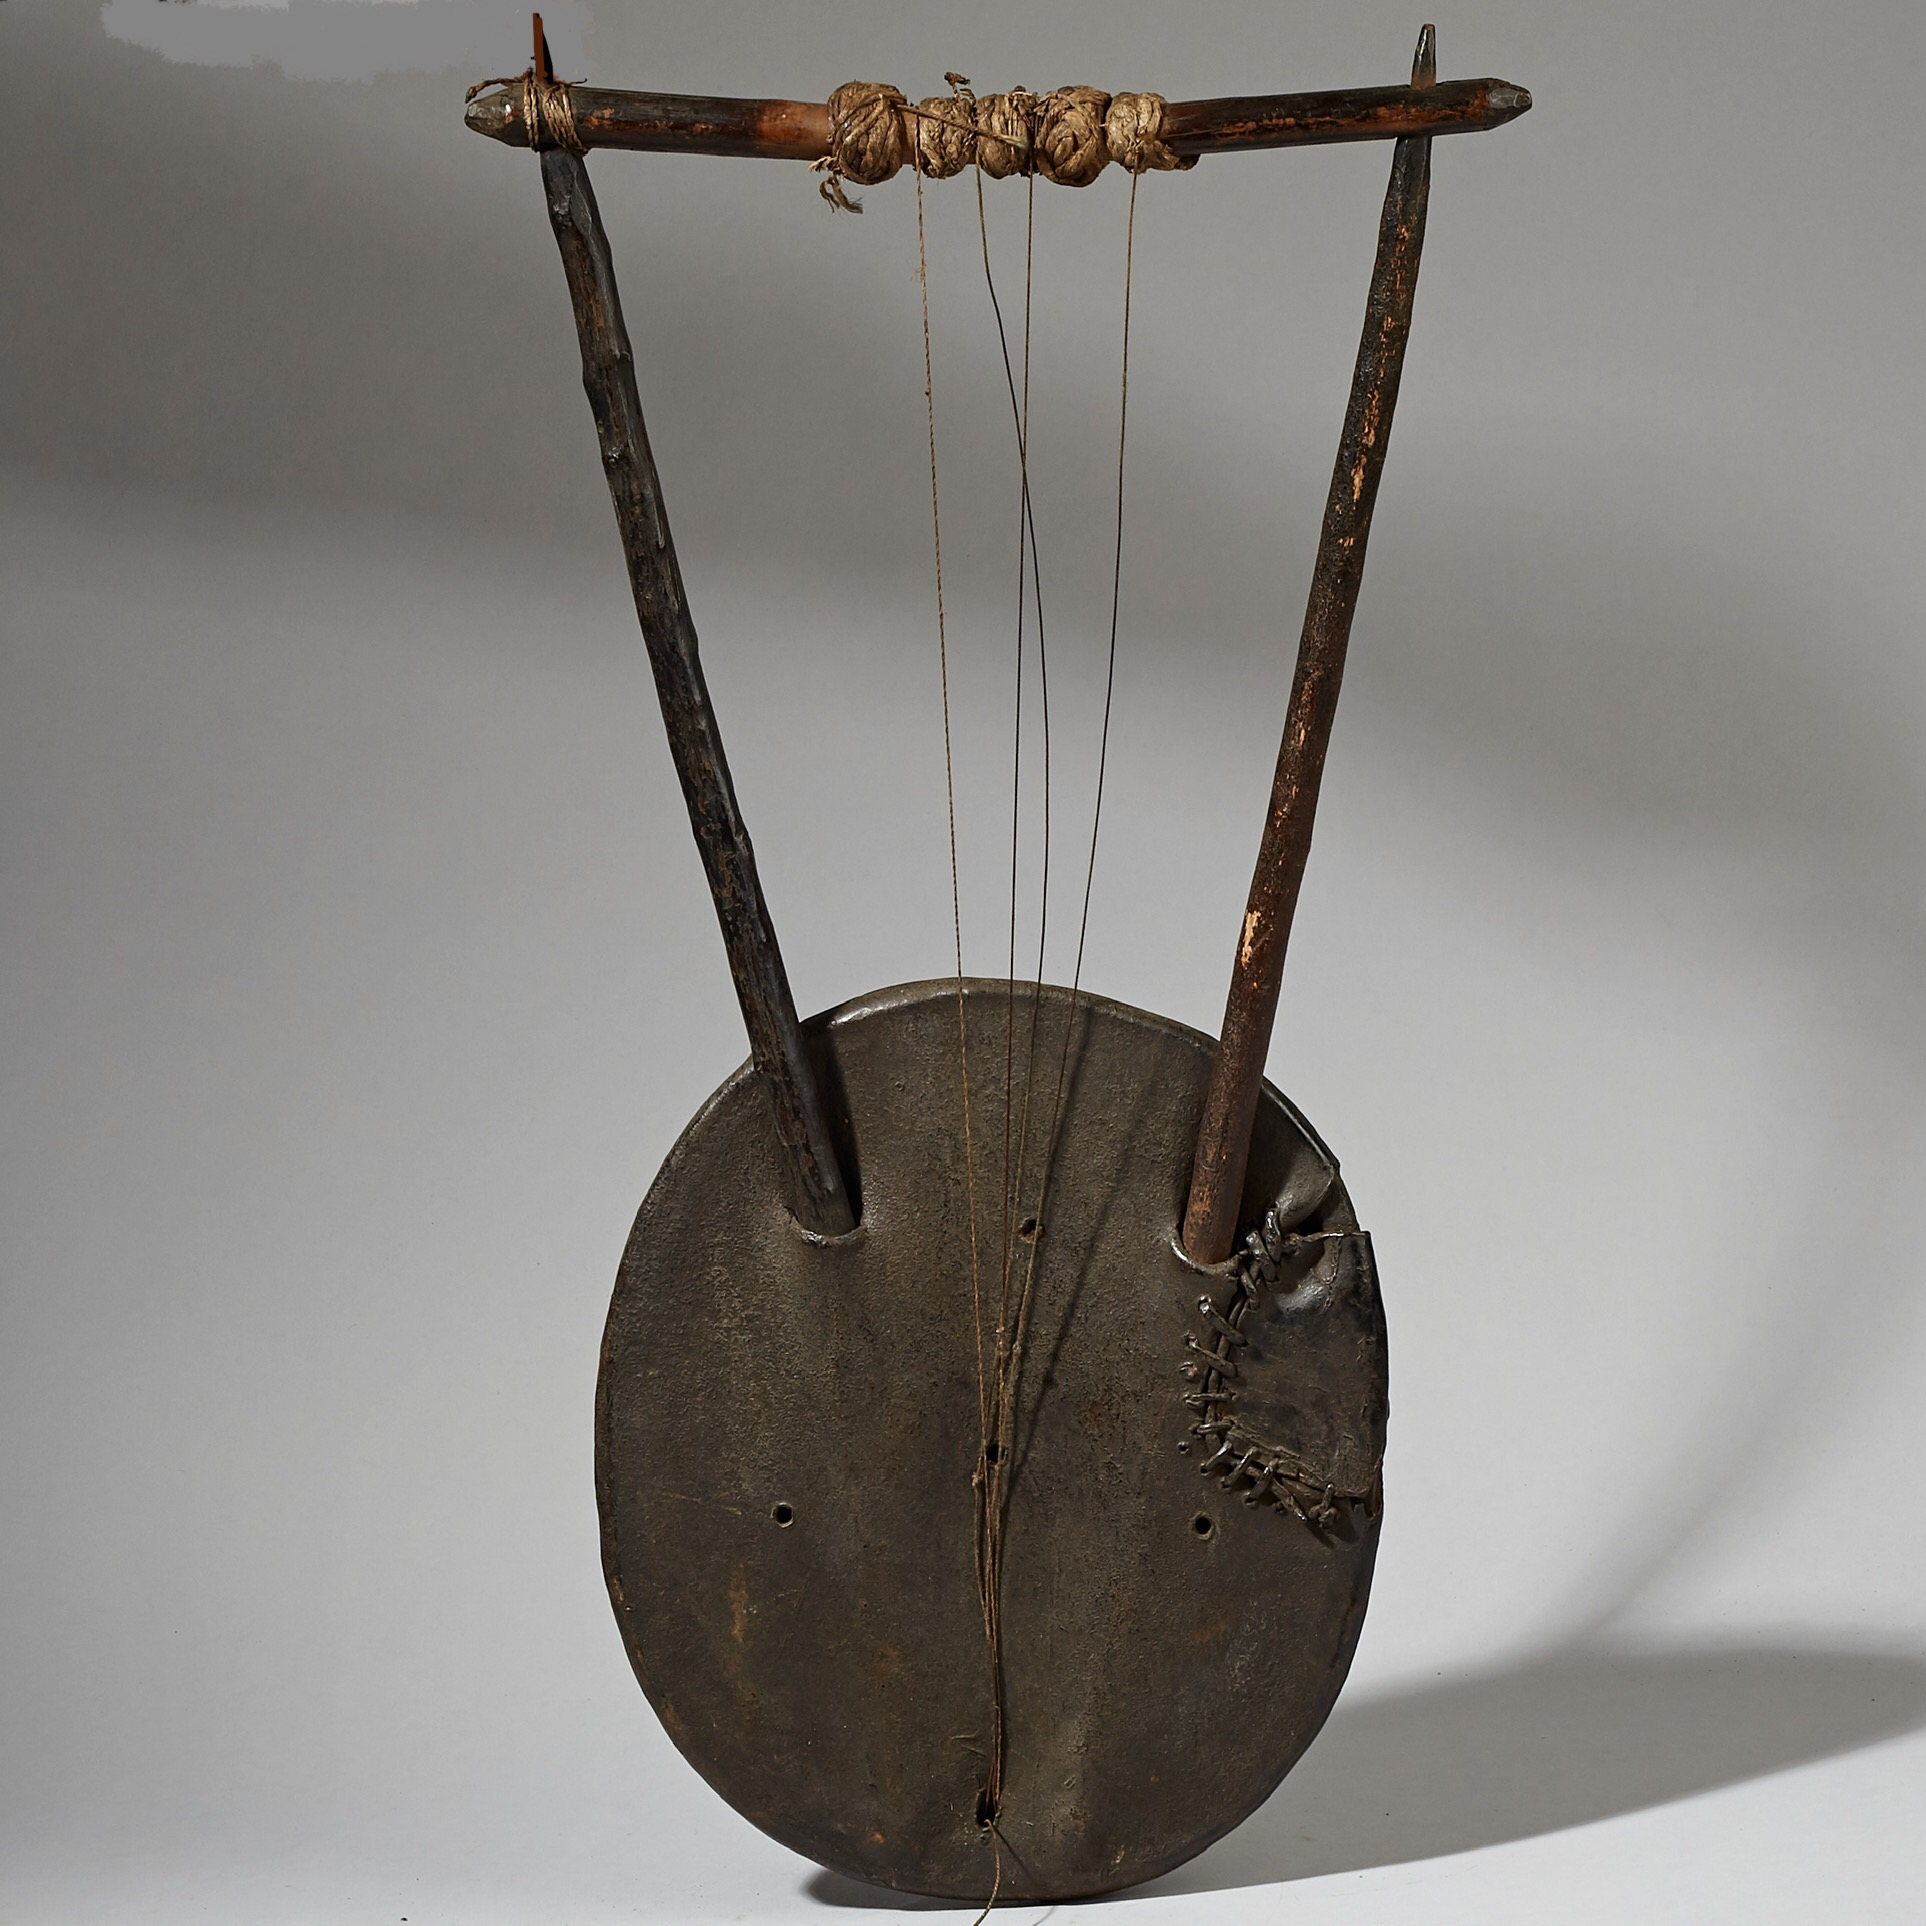 AN ENGRAVED MUSICAL INSTRUMENT FROM ETHIOPIA WITH STITCH REPAIR( No 3087 )